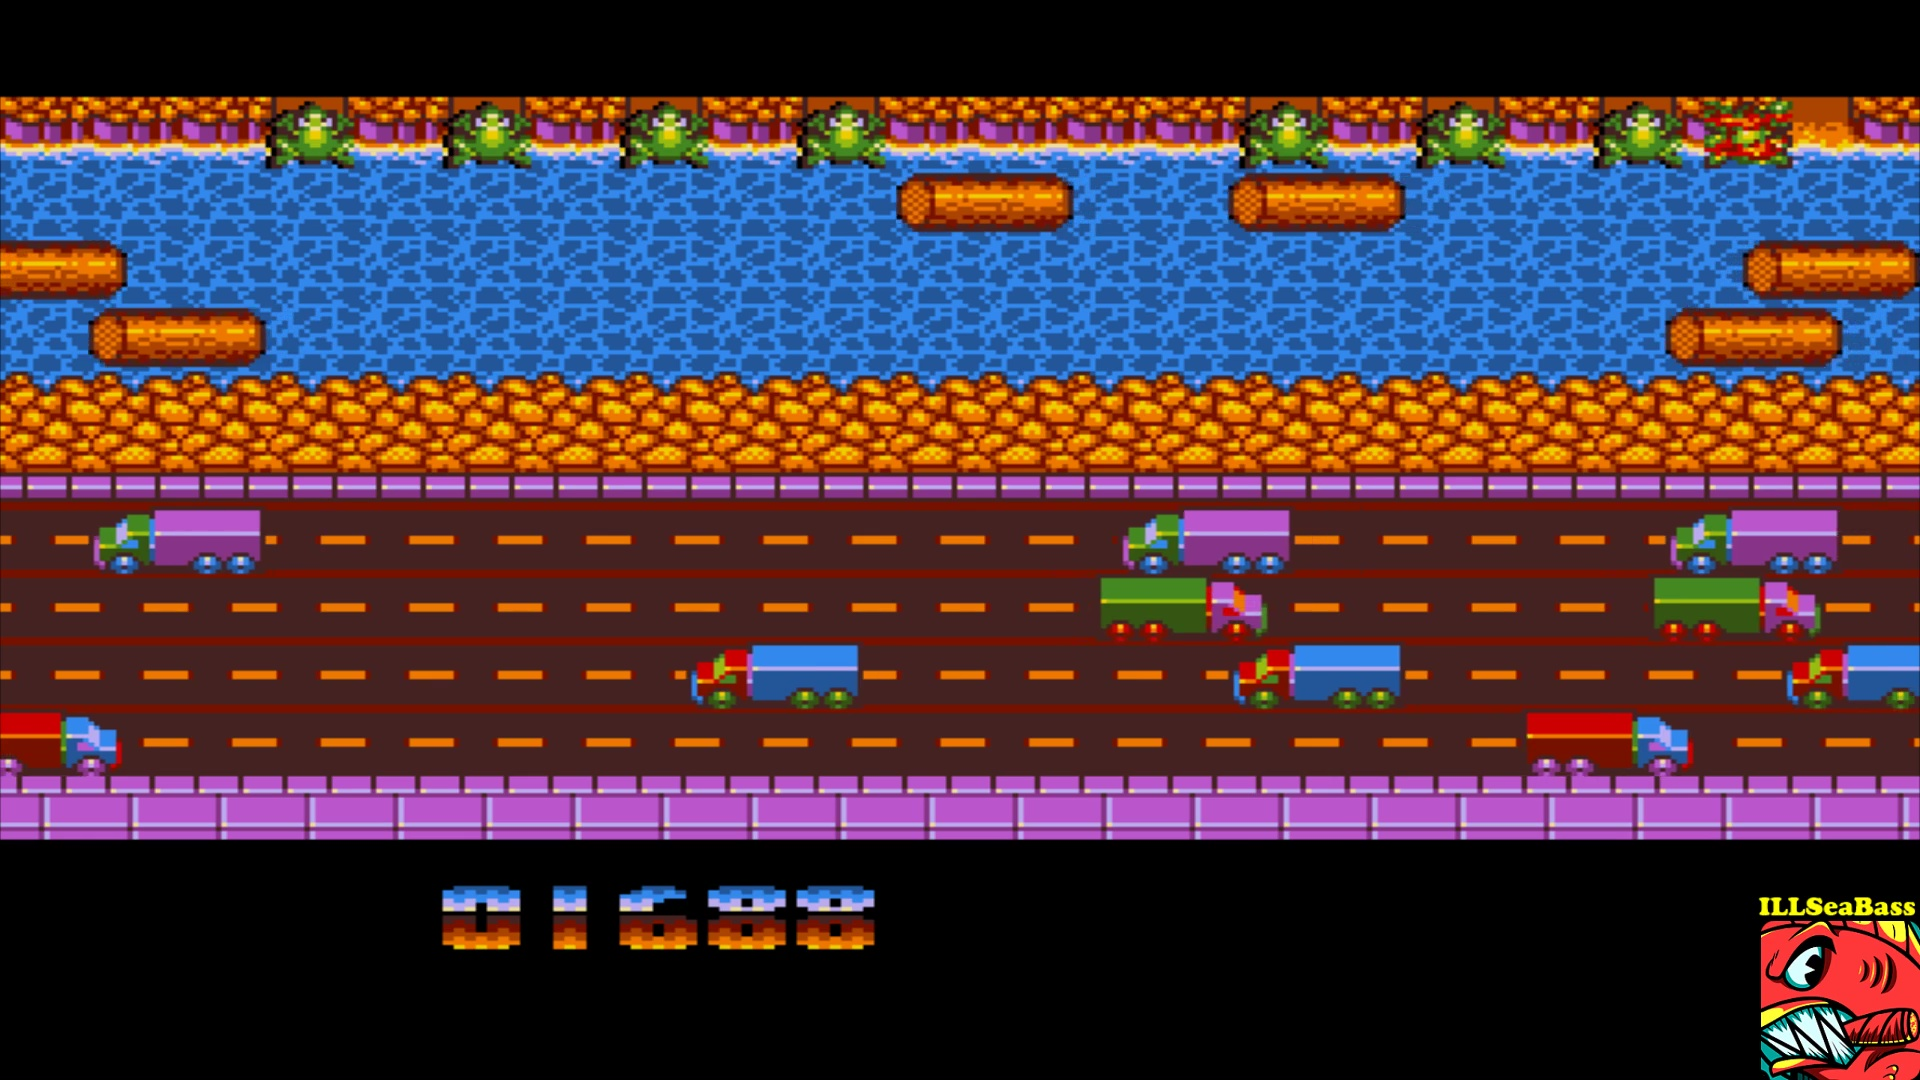 ILLSeaBass: Frogger (Amiga Emulated) 1,688 points on 2017-10-26 00:01:22